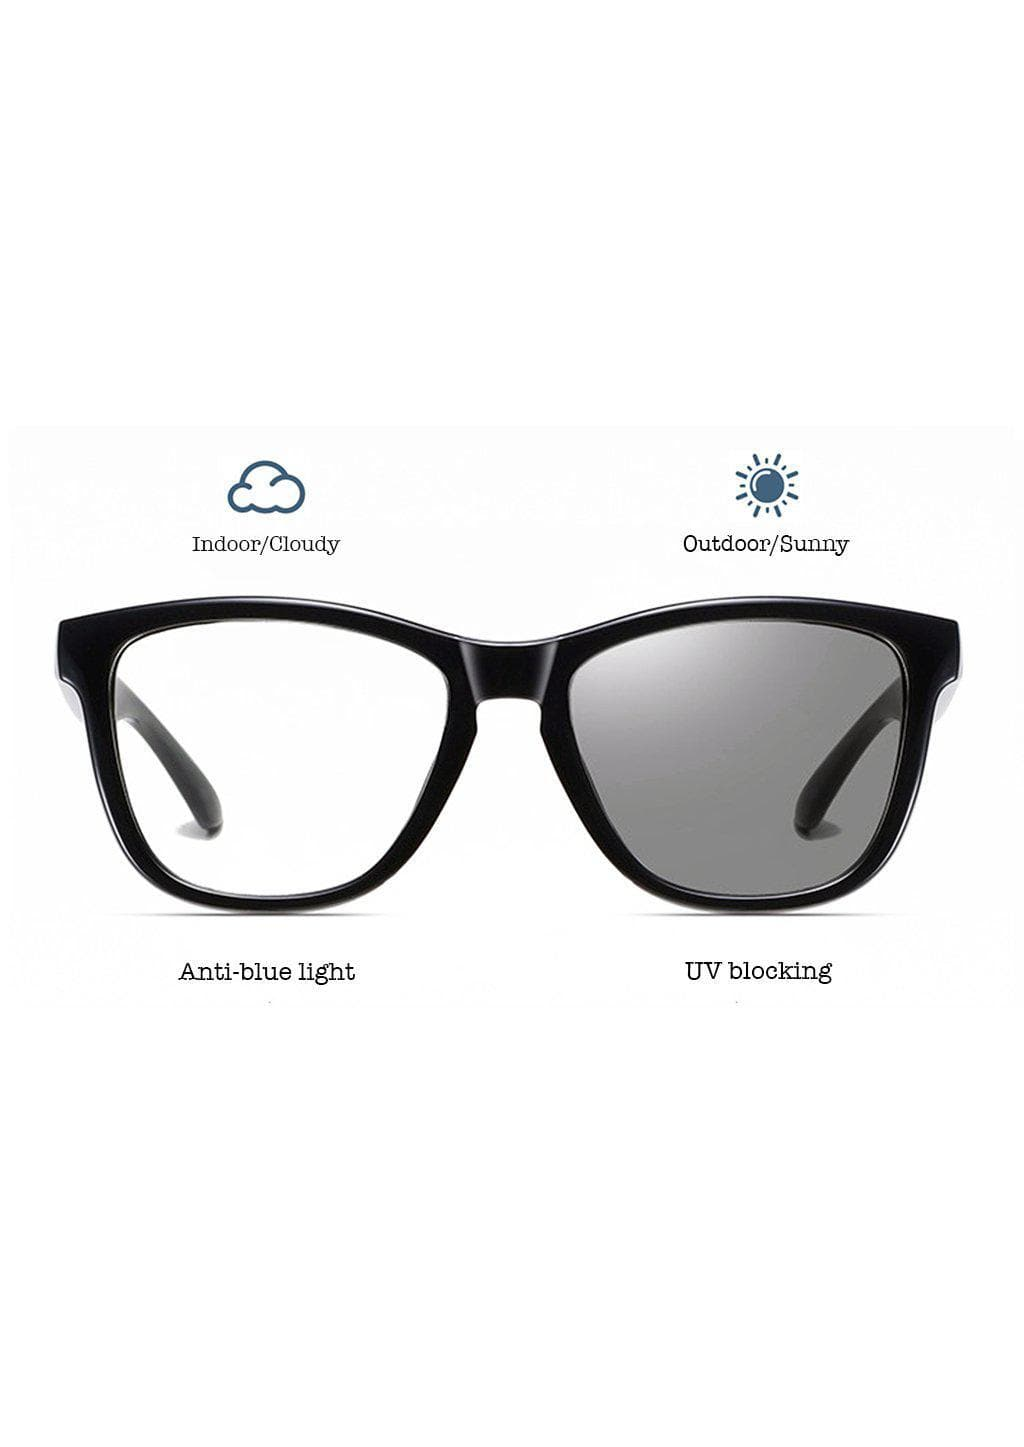 Our Photochromic anti bluelight black glasses that work like two in one. Turns dark in the sun and clear inside.